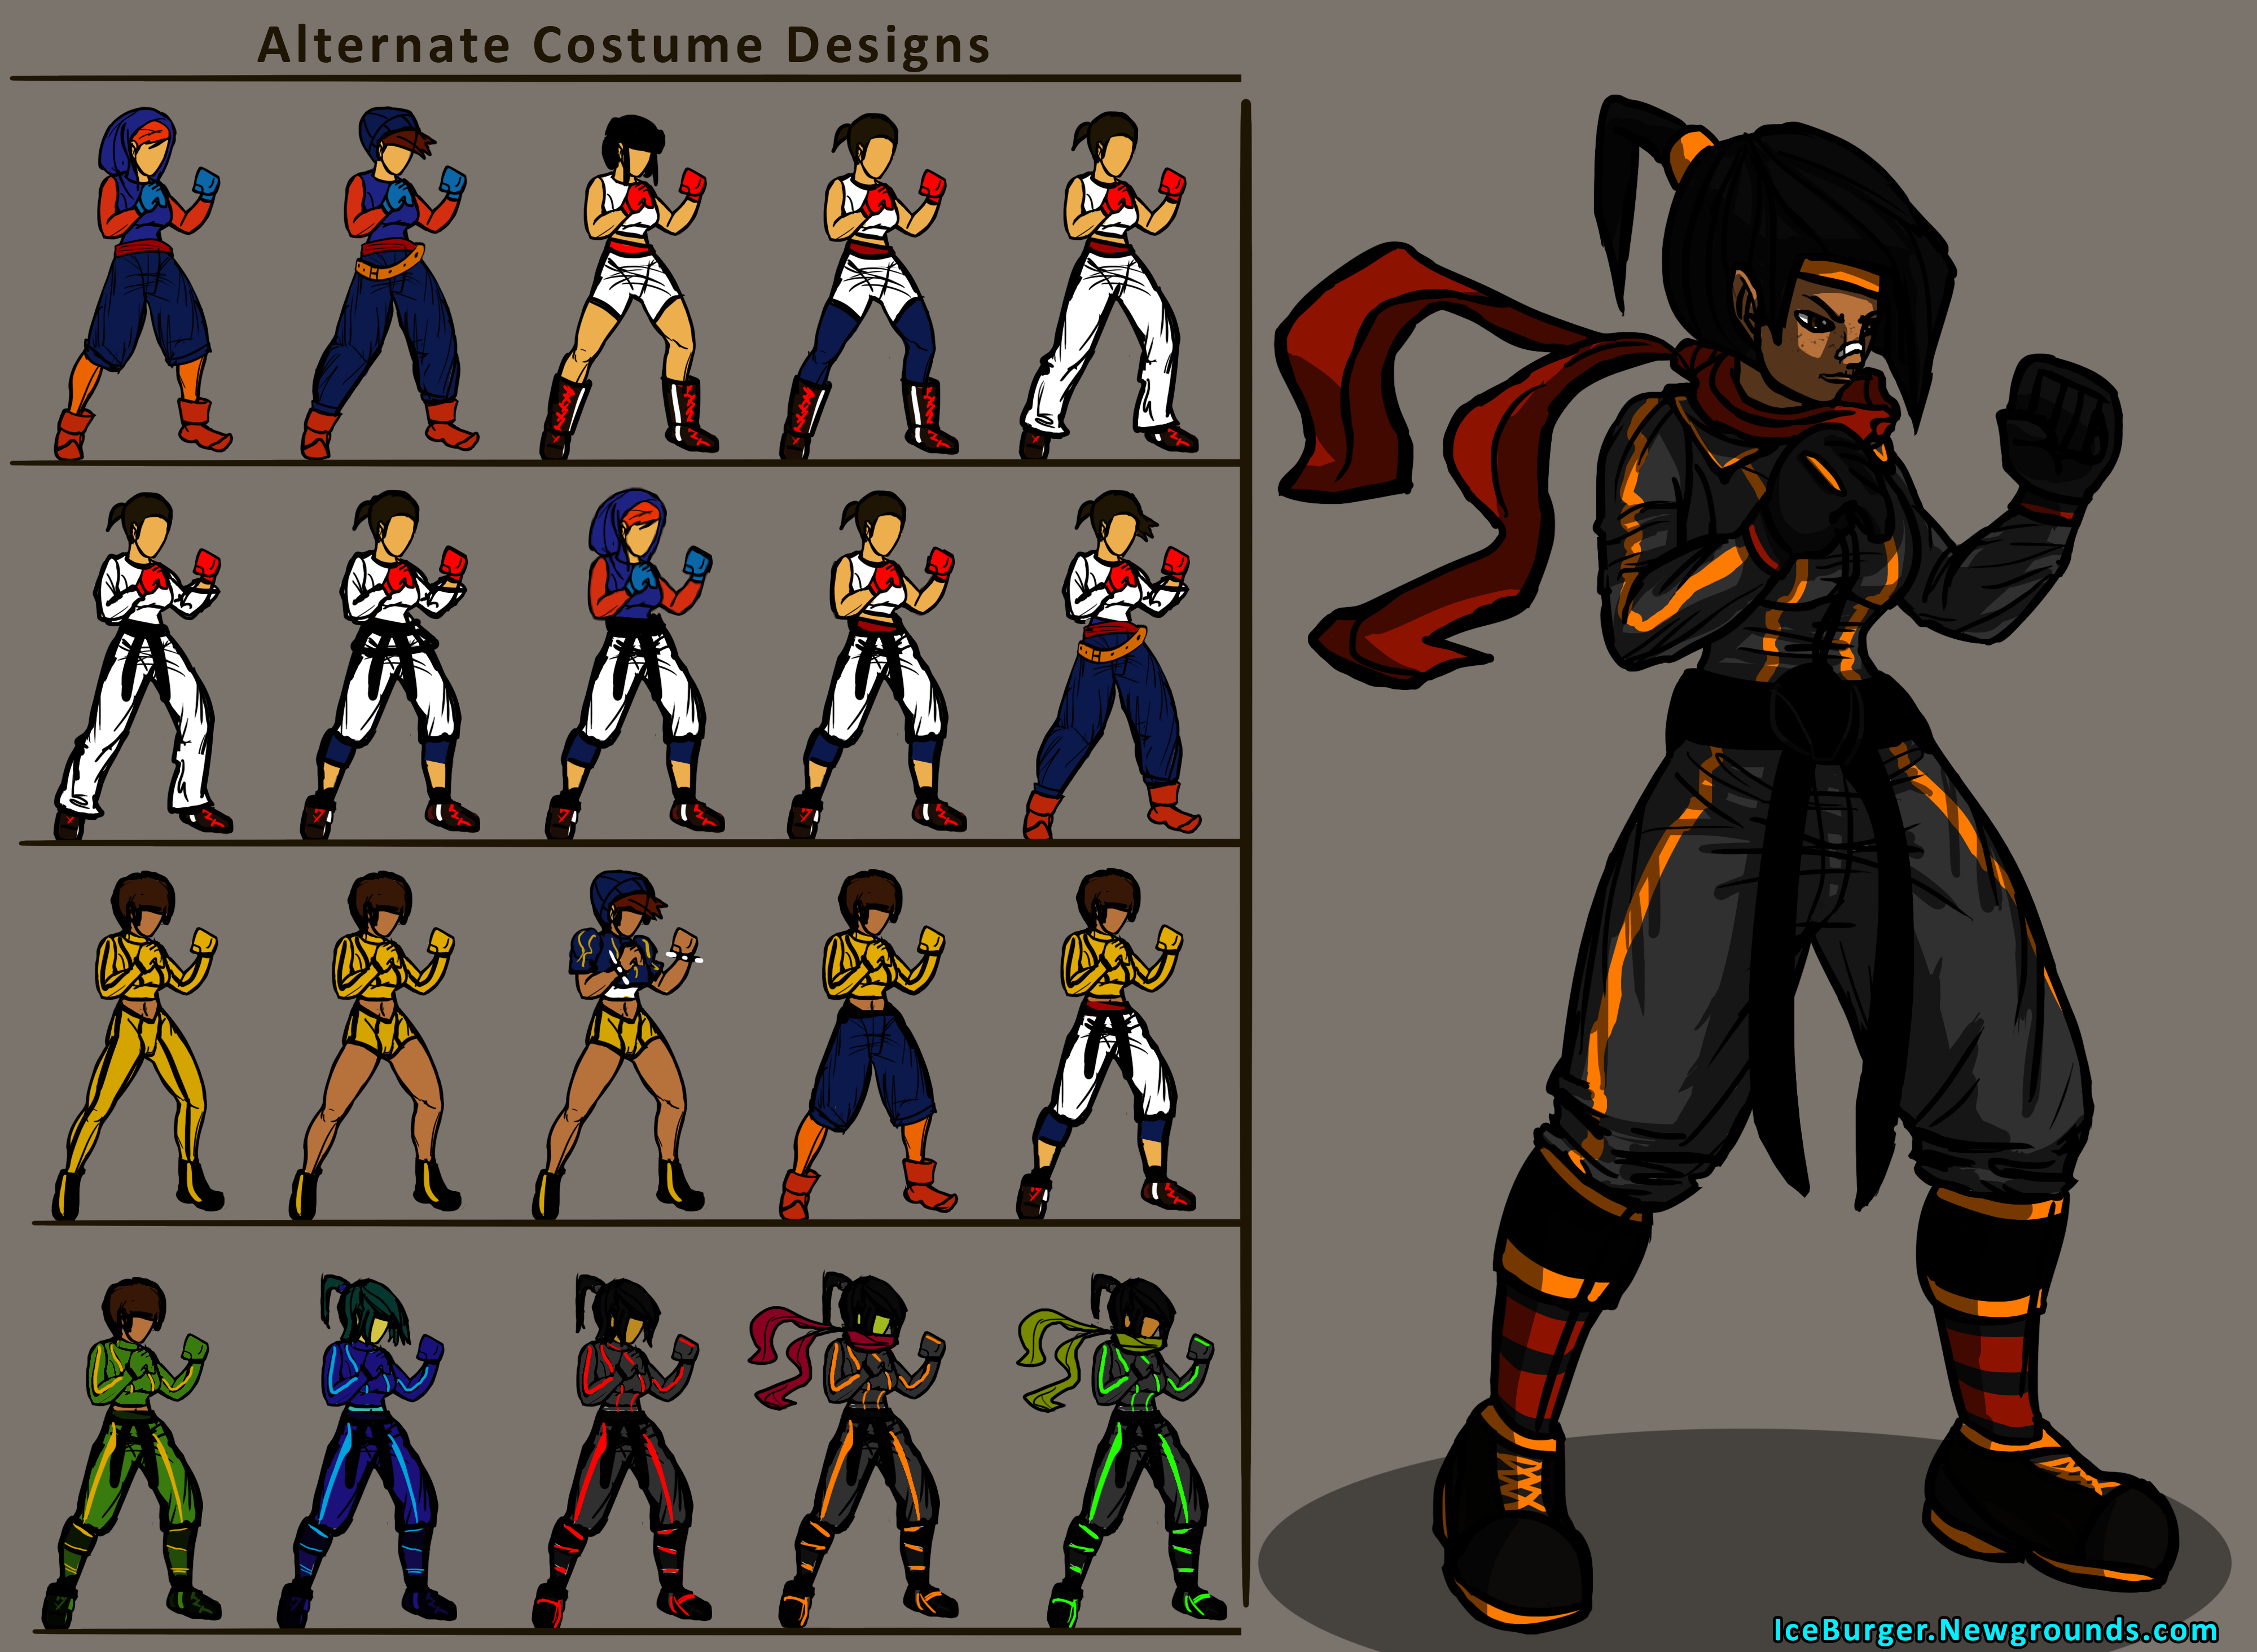 FighterConcepts